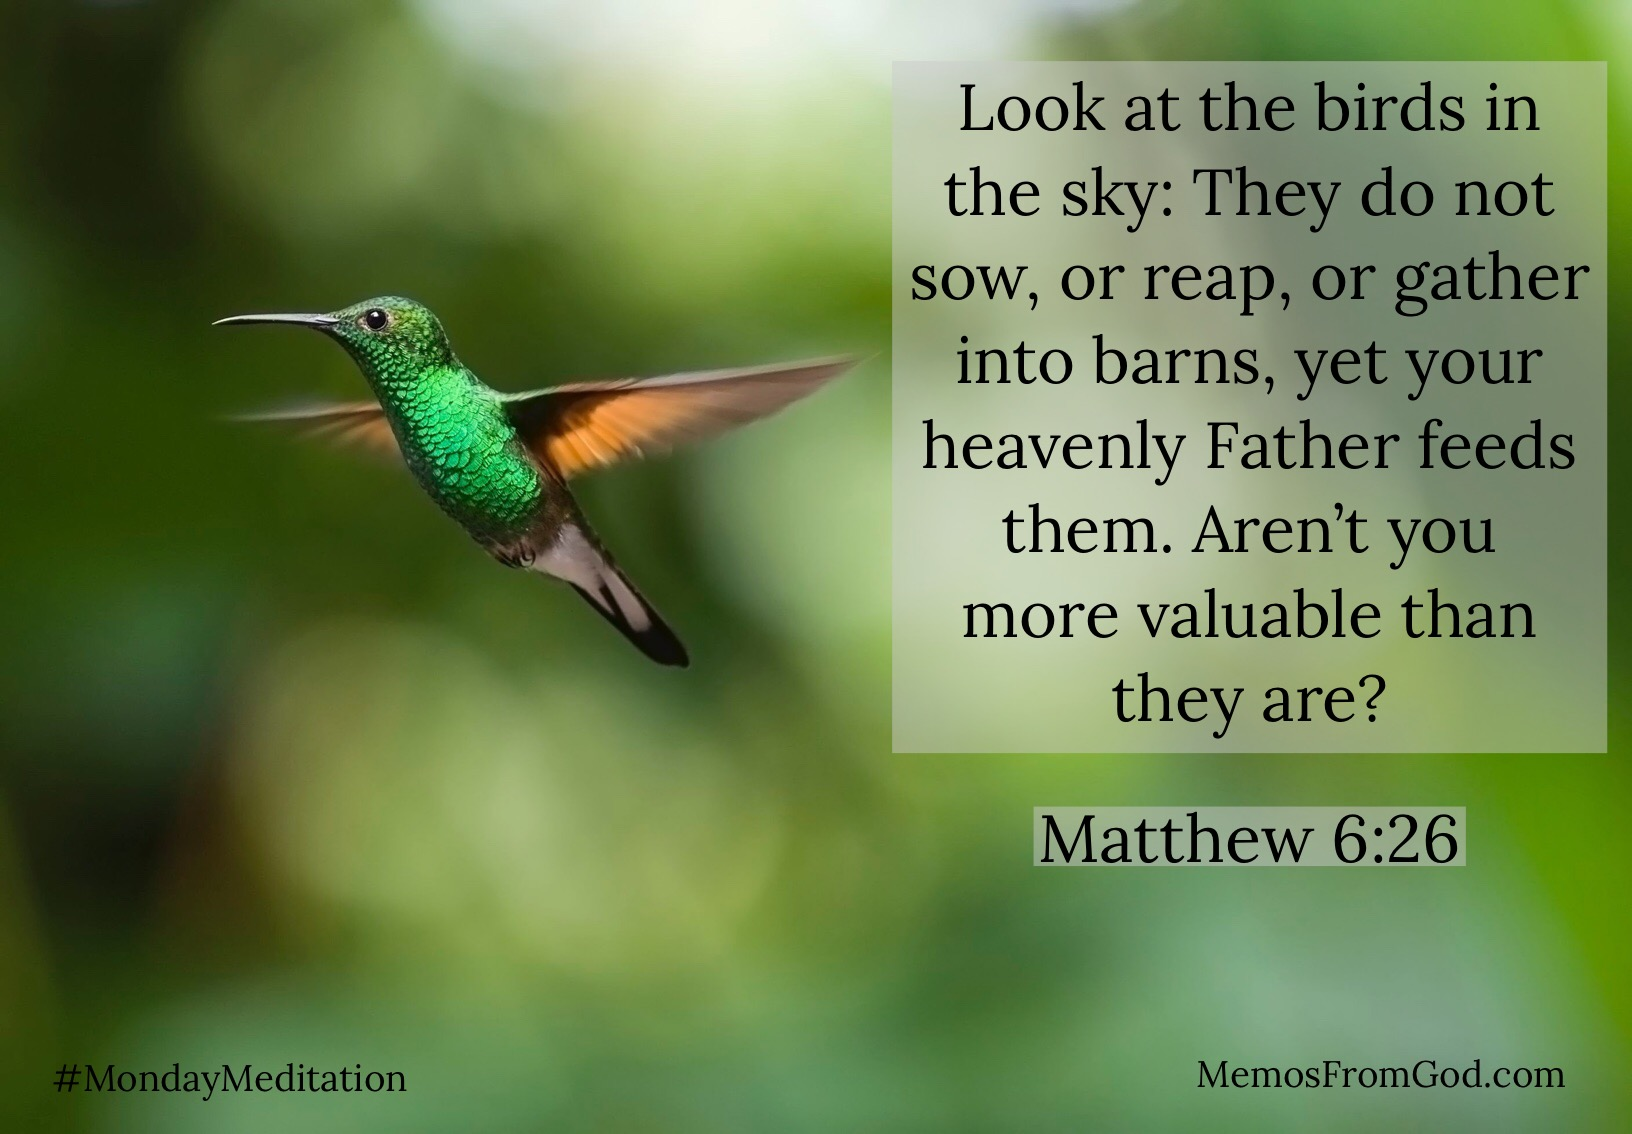 Look at the birds in the sky: They do not sow, or reap, or gather into barns, yet your heavenly Father feeds them. Aren't you more valuable than they are? Matthew 6:26